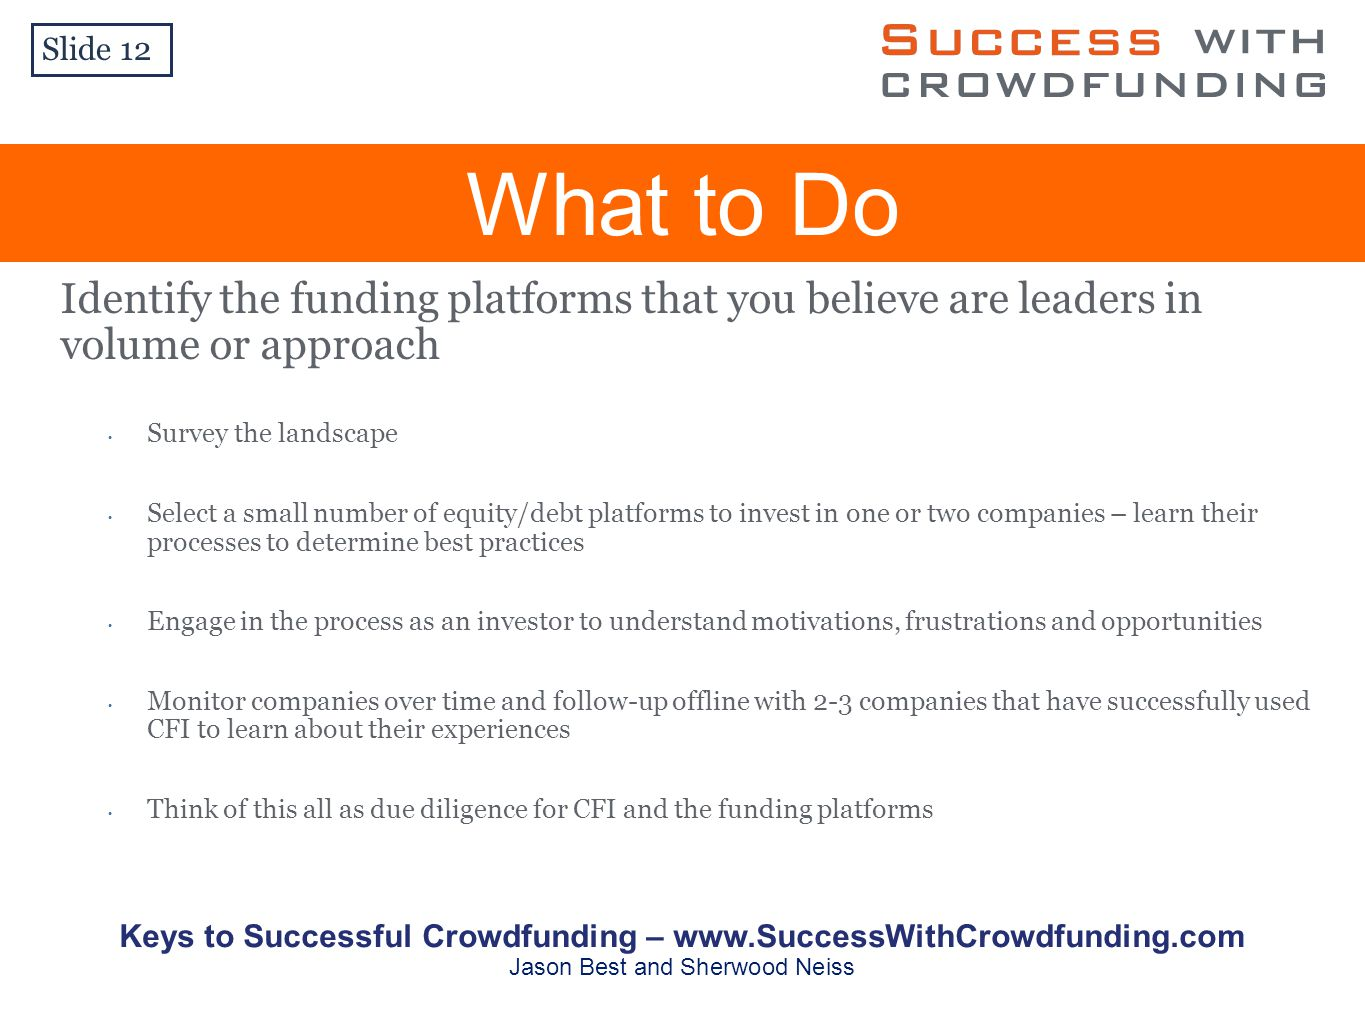 What to Do Slide 12 Identify the funding platforms that you believe are leaders in volume or approach Survey the landscape Select a small number of equity/debt platforms to invest in one or two companies – learn their processes to determine best practices Engage in the process as an investor to understand motivations, frustrations and opportunities Monitor companies over time and follow-up offline with 2-3 companies that have successfully used CFI to learn about their experiences Think of this all as due diligence for CFI and the funding platforms Keys to Successful Crowdfunding –   Jason Best and Sherwood Neiss